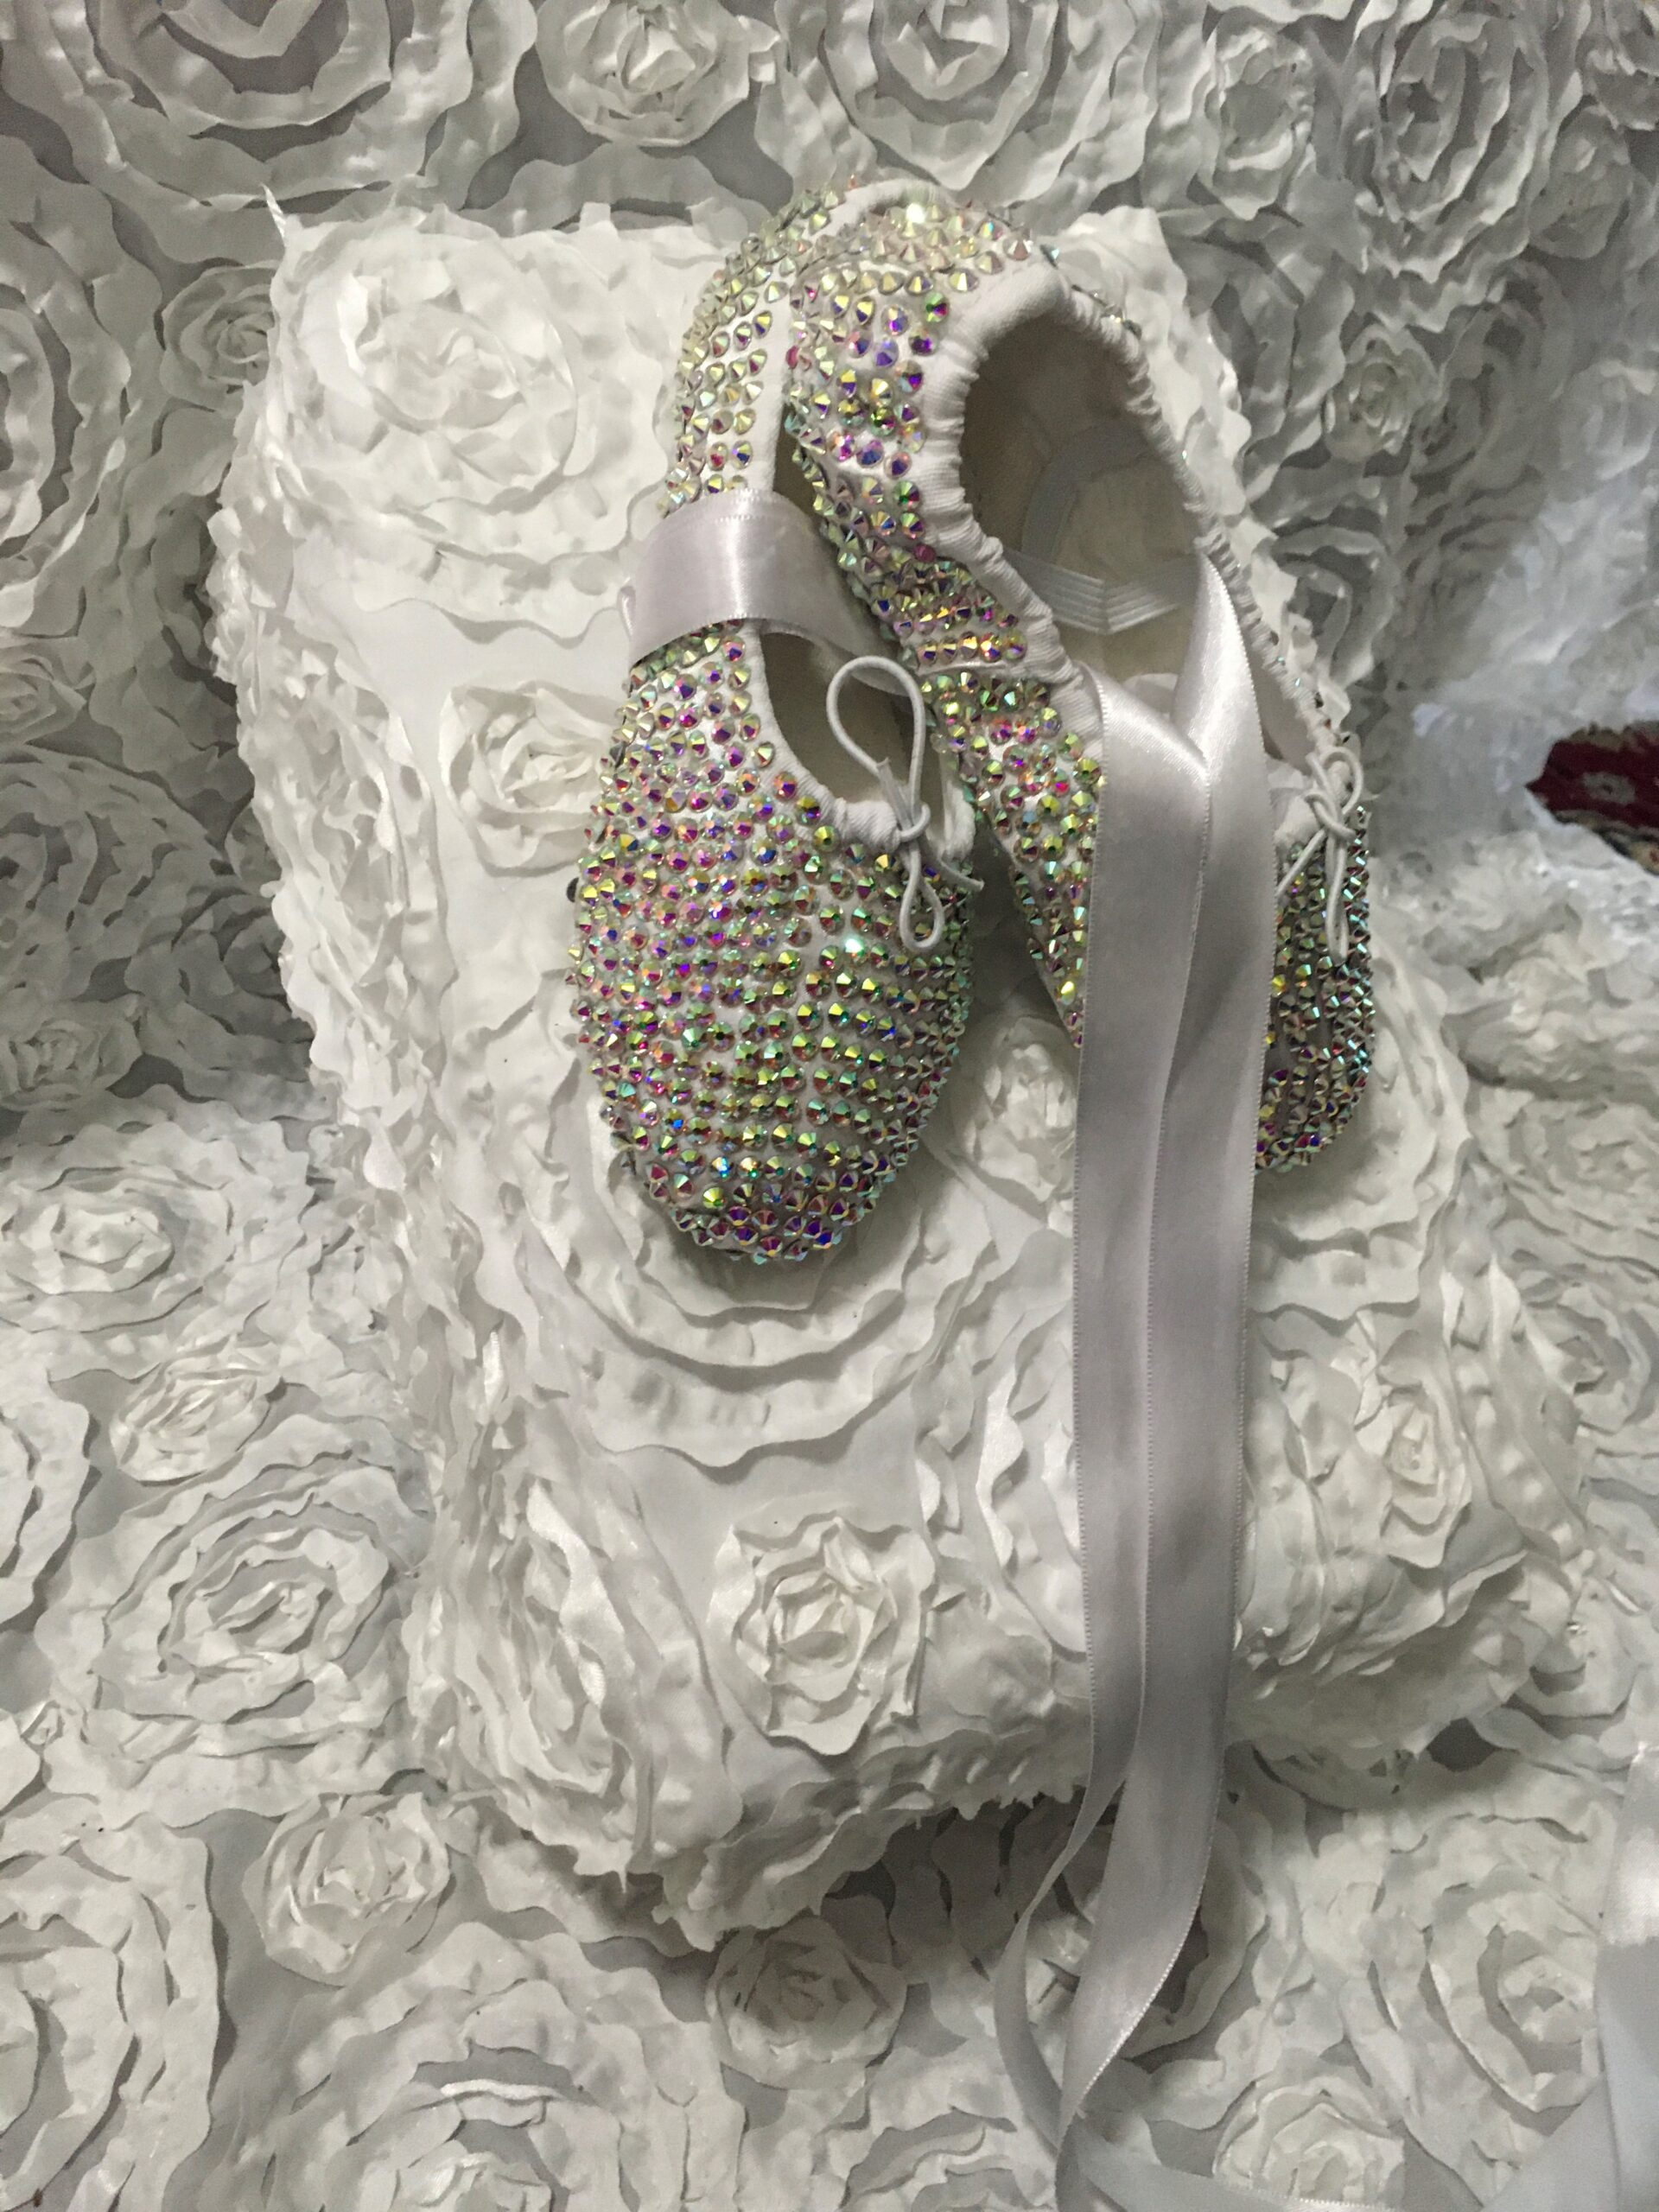 Ballerina-with-rhinestones-shoes-white with Tie-2